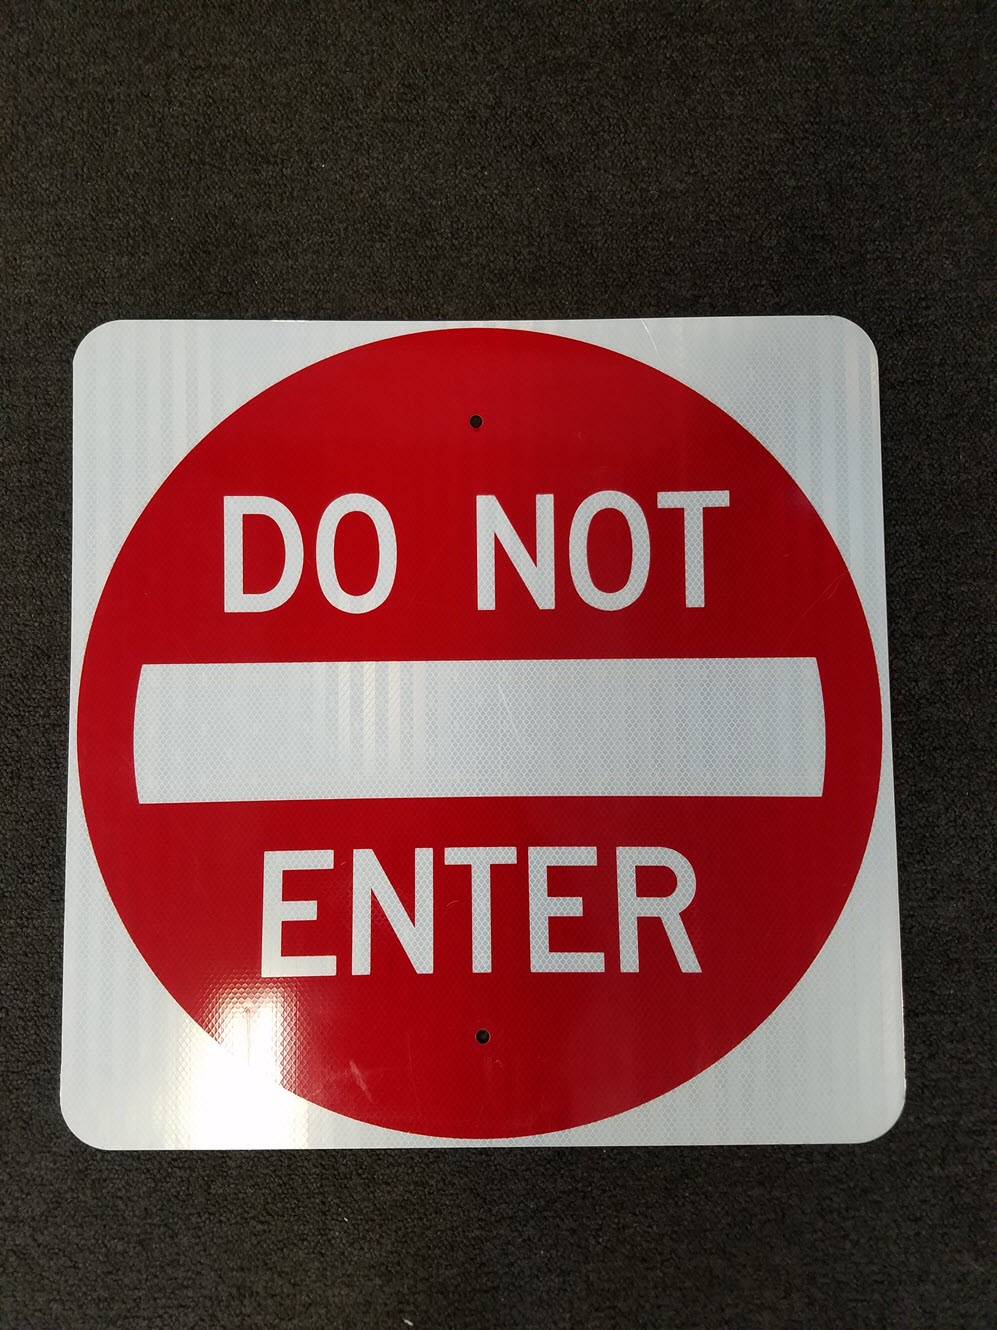 Do Not Enter Signs (2).jpg